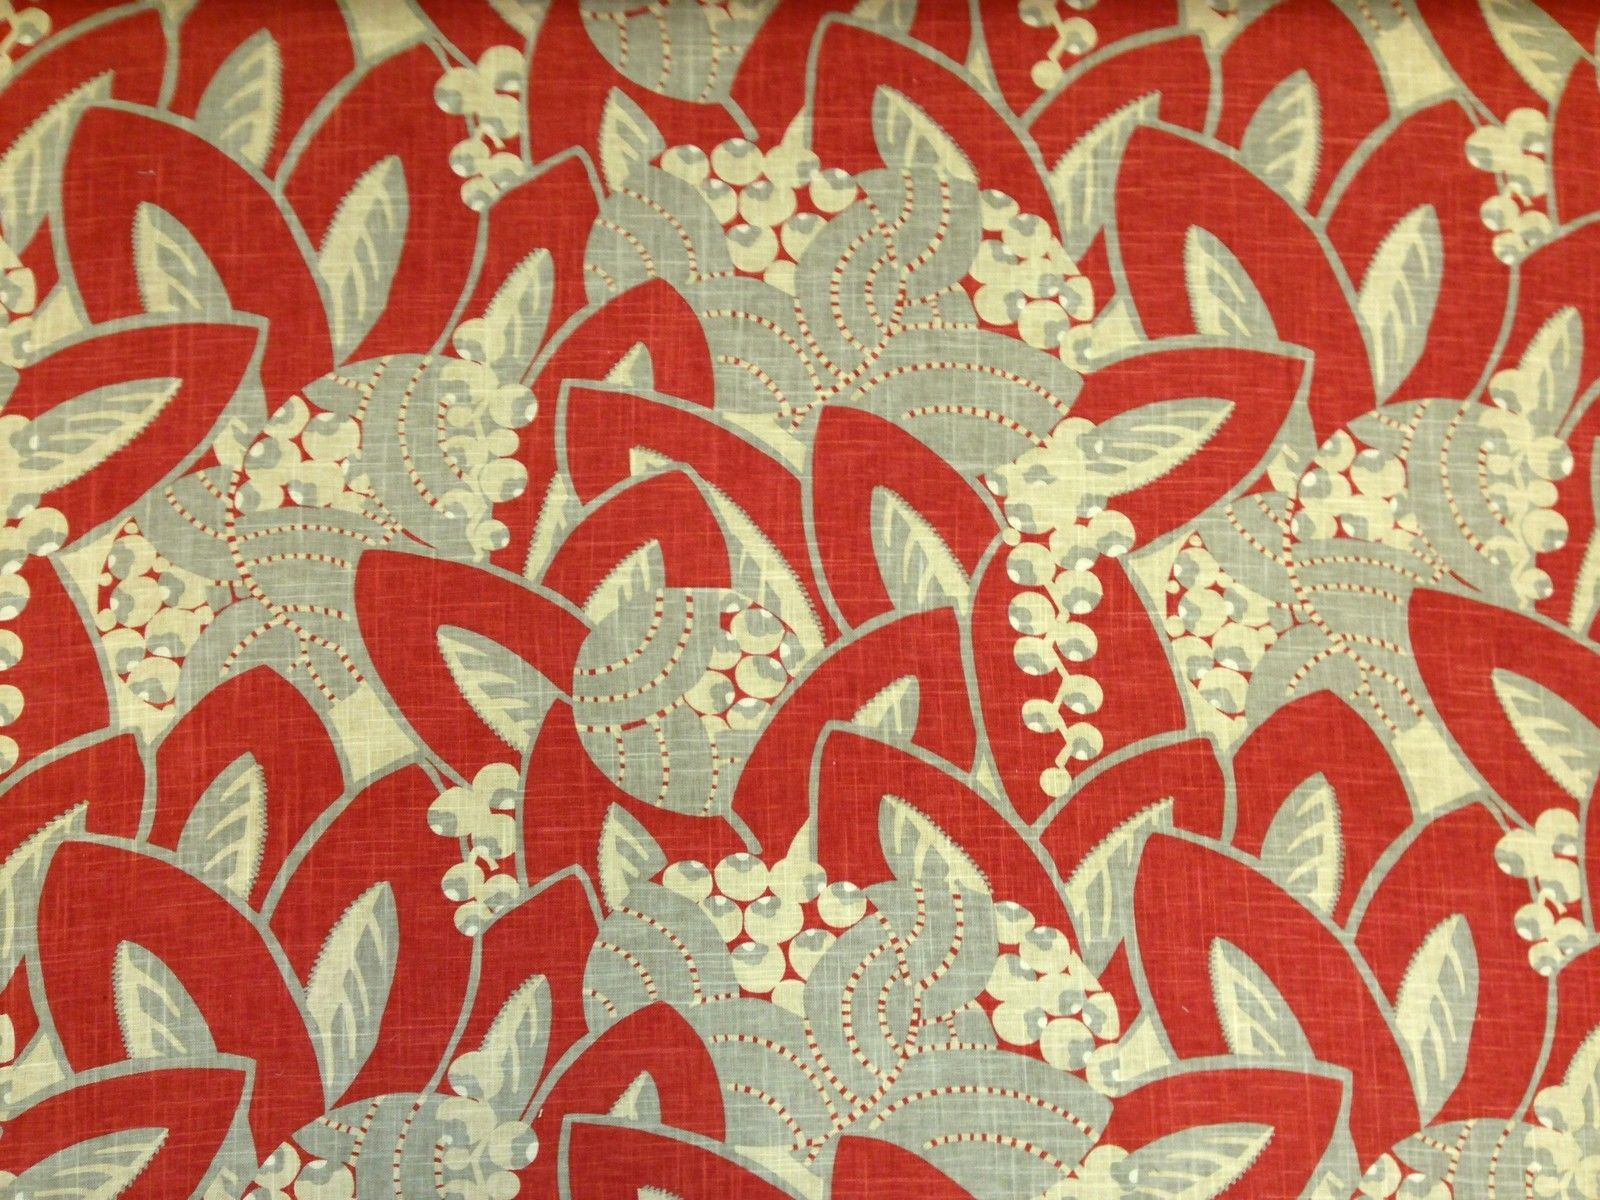 White beach print home decor fabric decorative seashell bty ebay - Edinburgh Weavers Hepburn Red Floral Art Deco Retro Curtain Fabric Linen Ebay